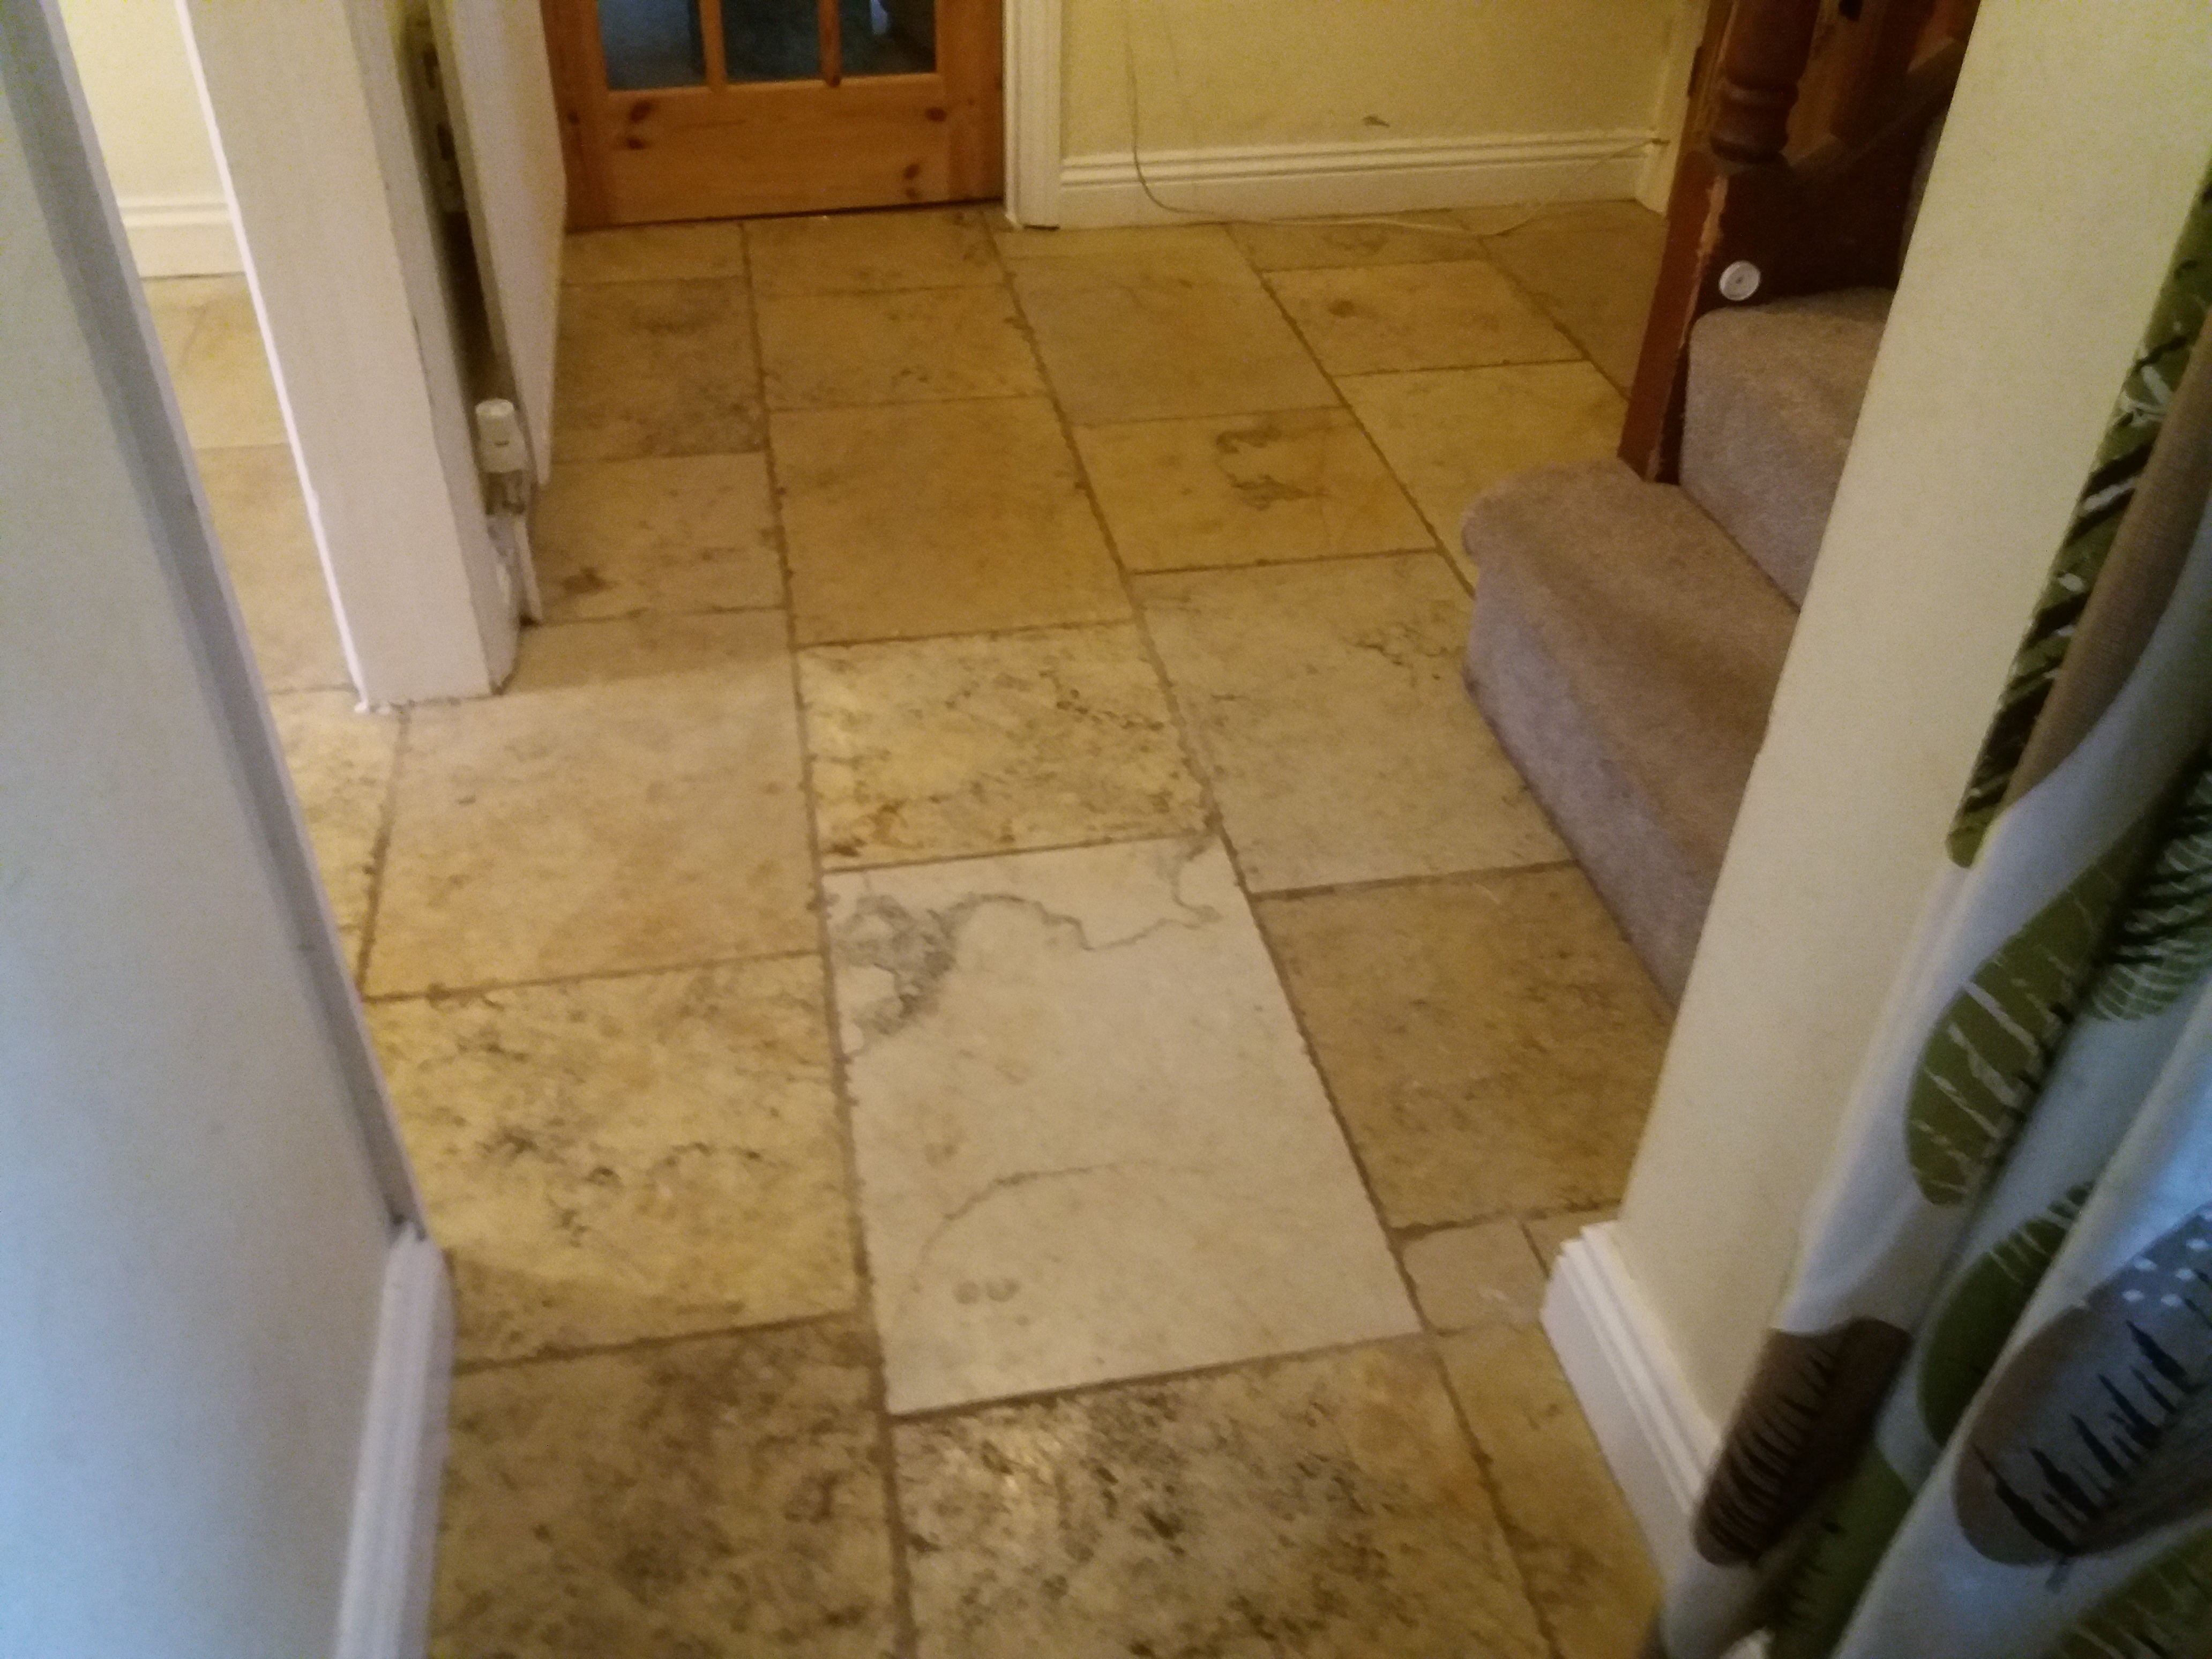 Stone floor cleaning in the cotswolds floor restore oxford ltd if you would like a quote for your stone floor cleaning in the cotswolds give us a call on 0800 020 9199 dailygadgetfo Images